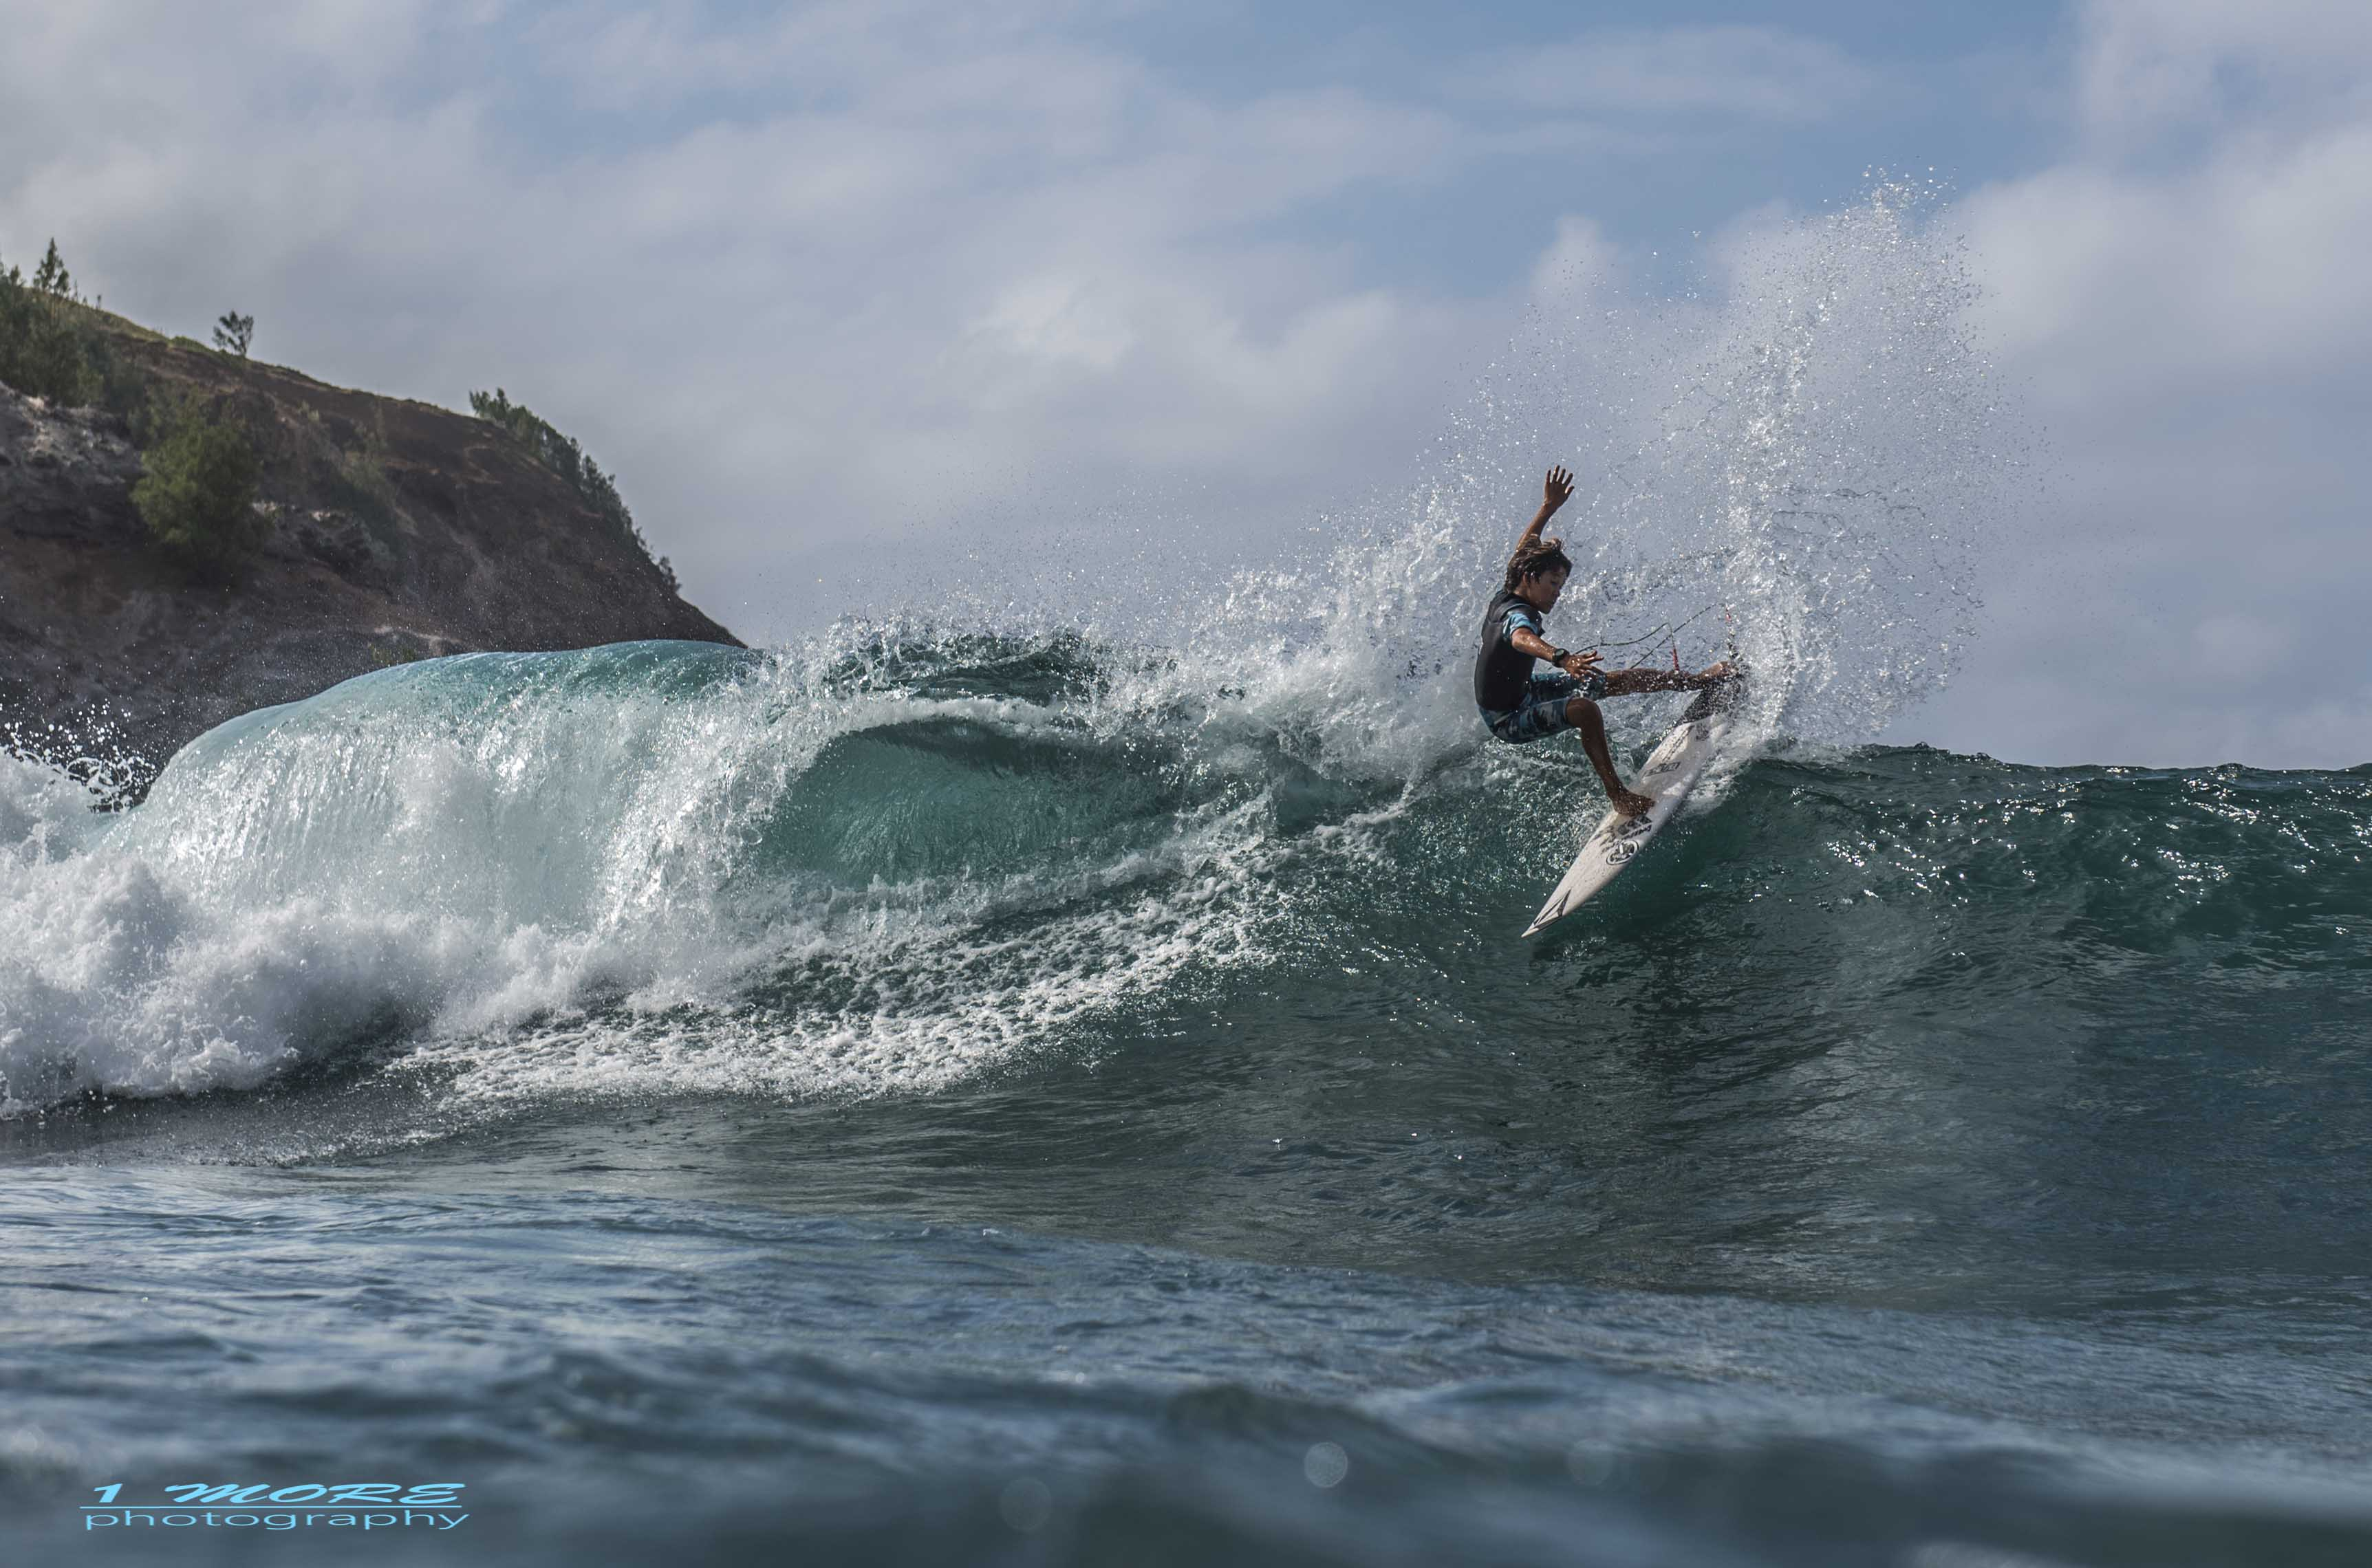 Jackson surfing close to home Photo: 1morephotography